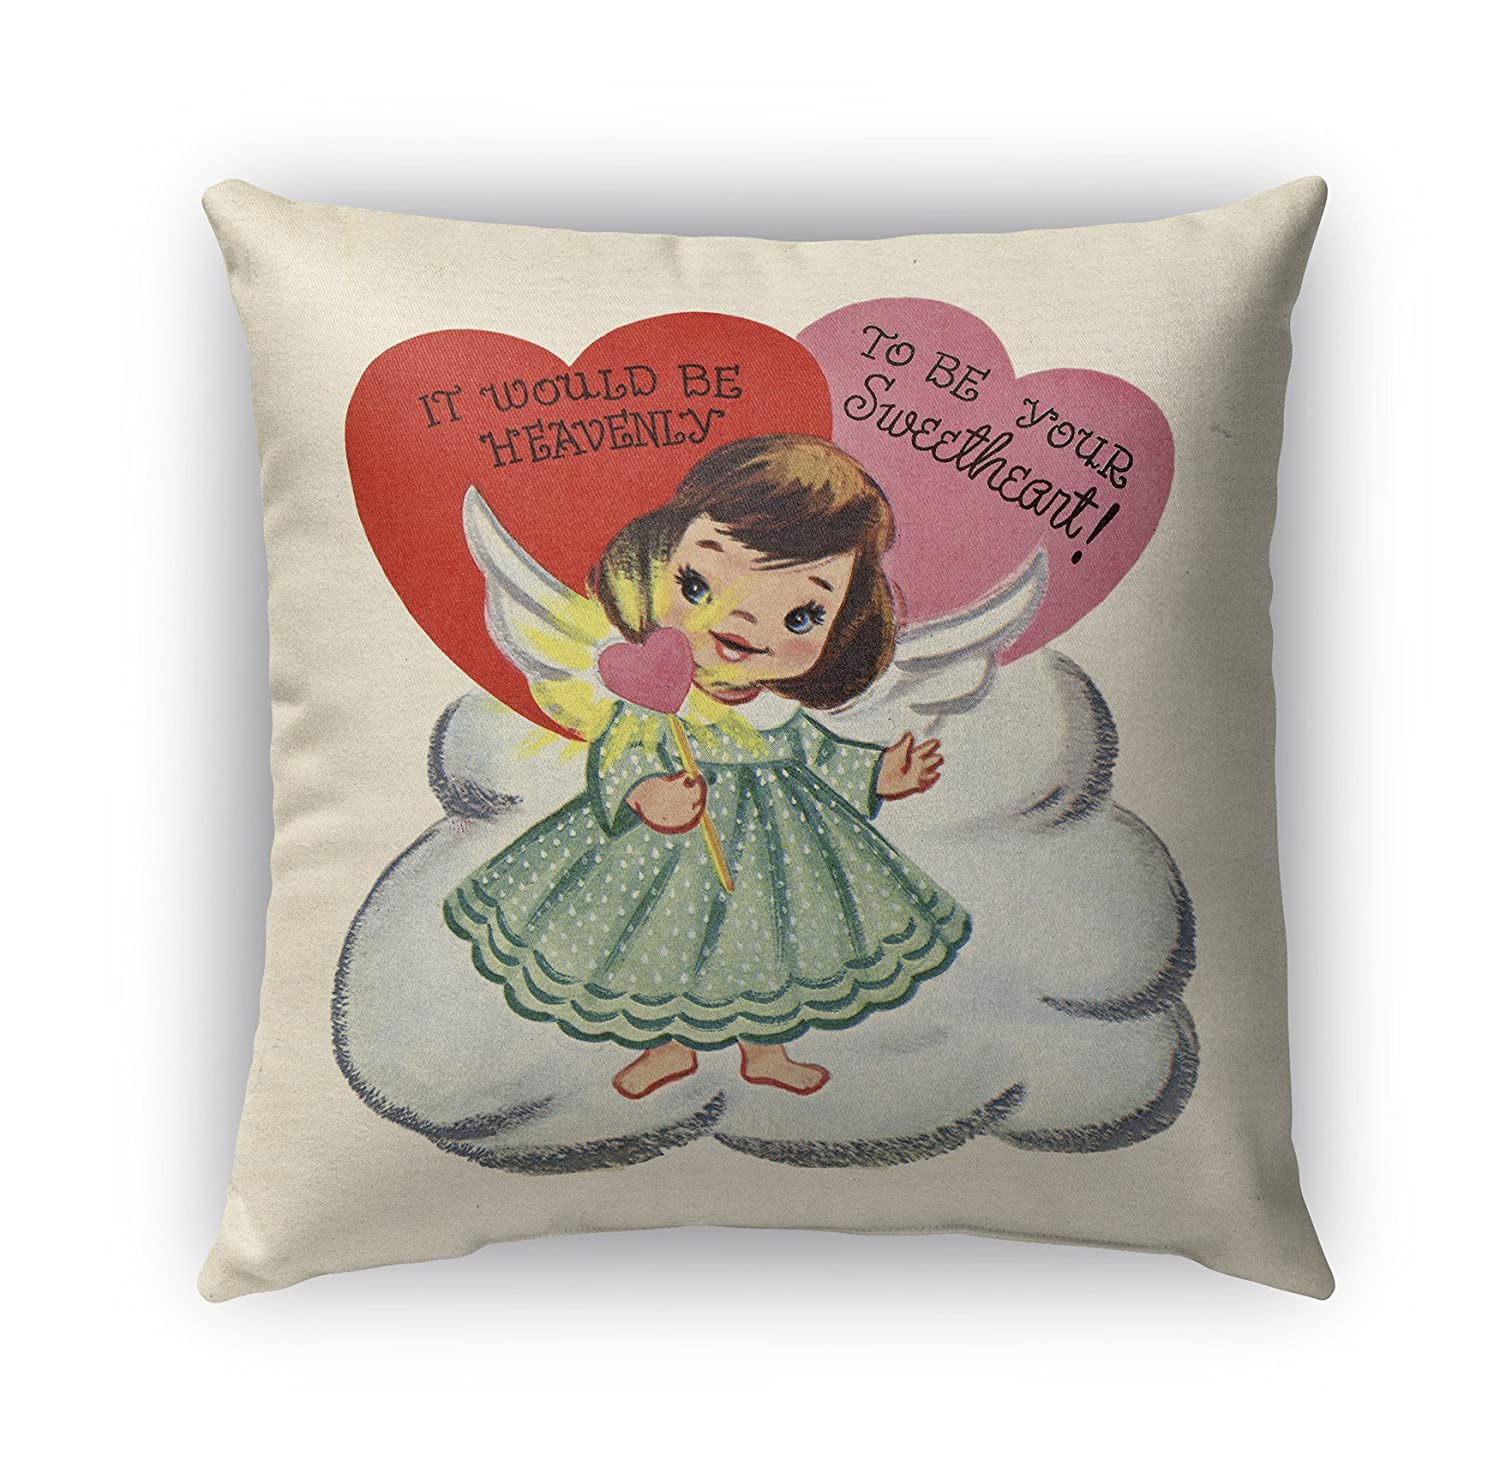 KAVKA Designs To Be Your Sweet Heart Indoor-Outdoor Pillow, (Green/Pink/Red) - TRADITIONS Collection, Size: 16X16X6 - (TELAVC8171OD16)